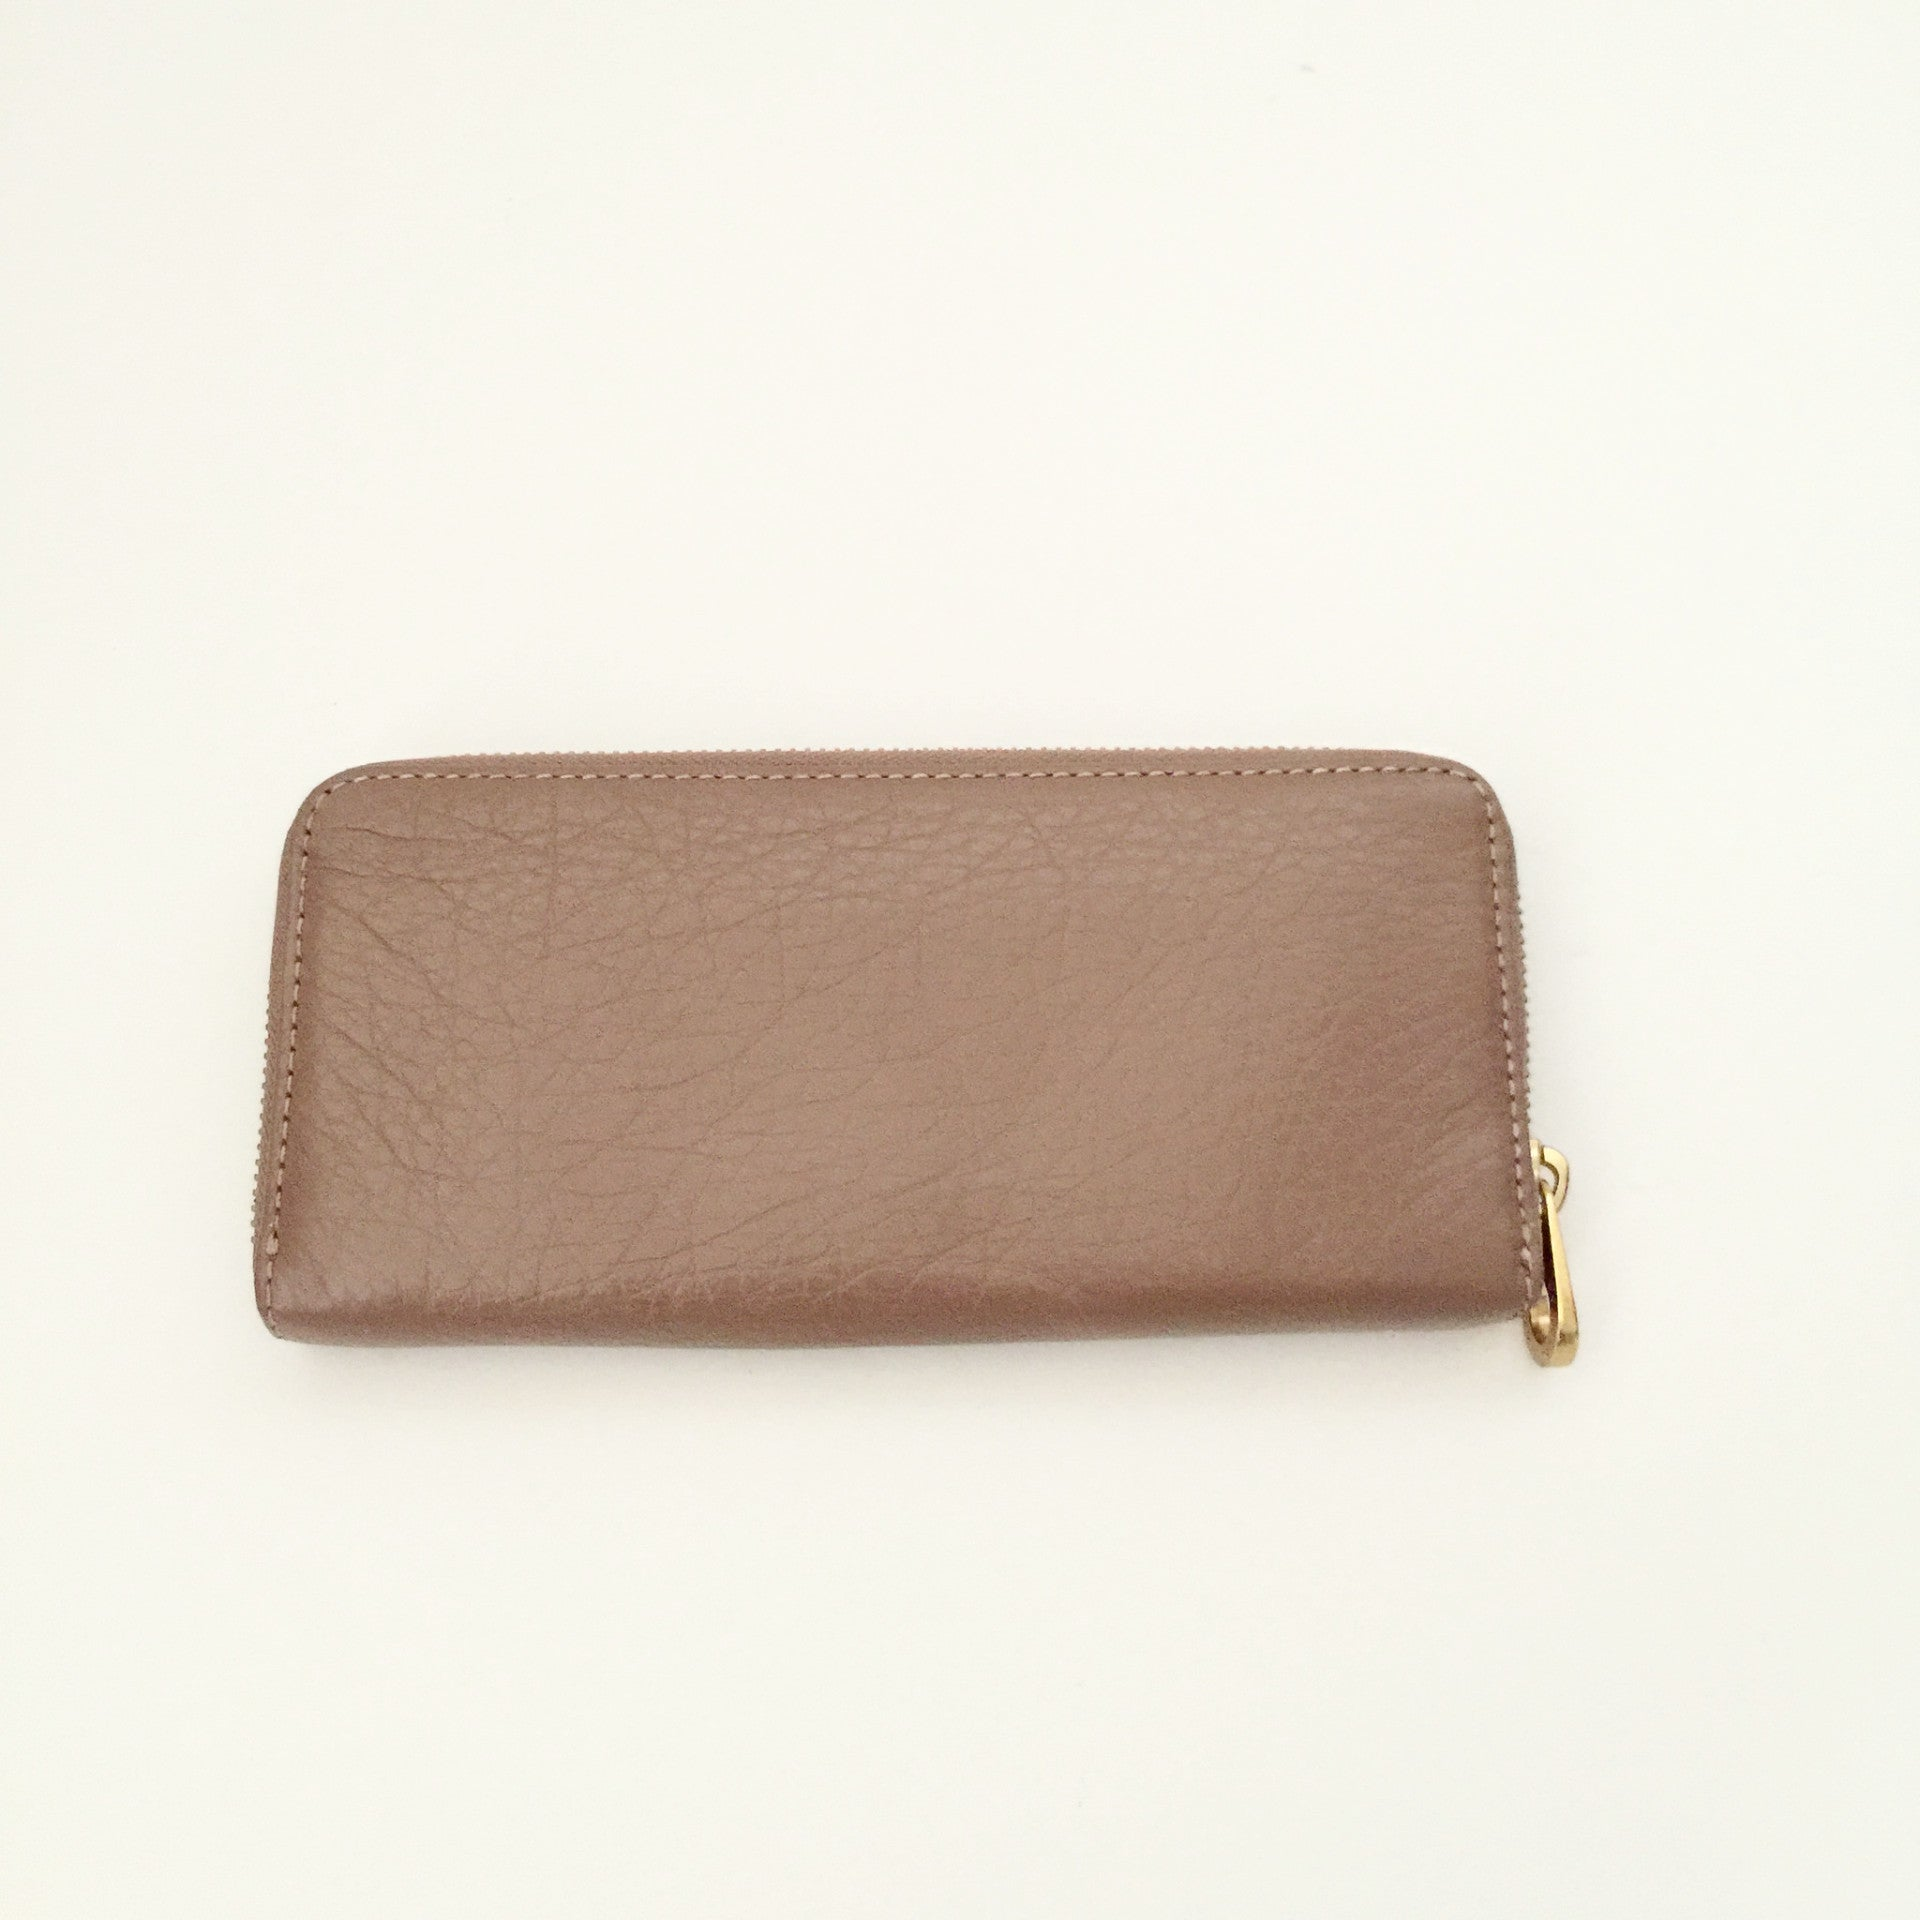 Authentic MARC BY MARC JACOBS Tan Leather Wallet